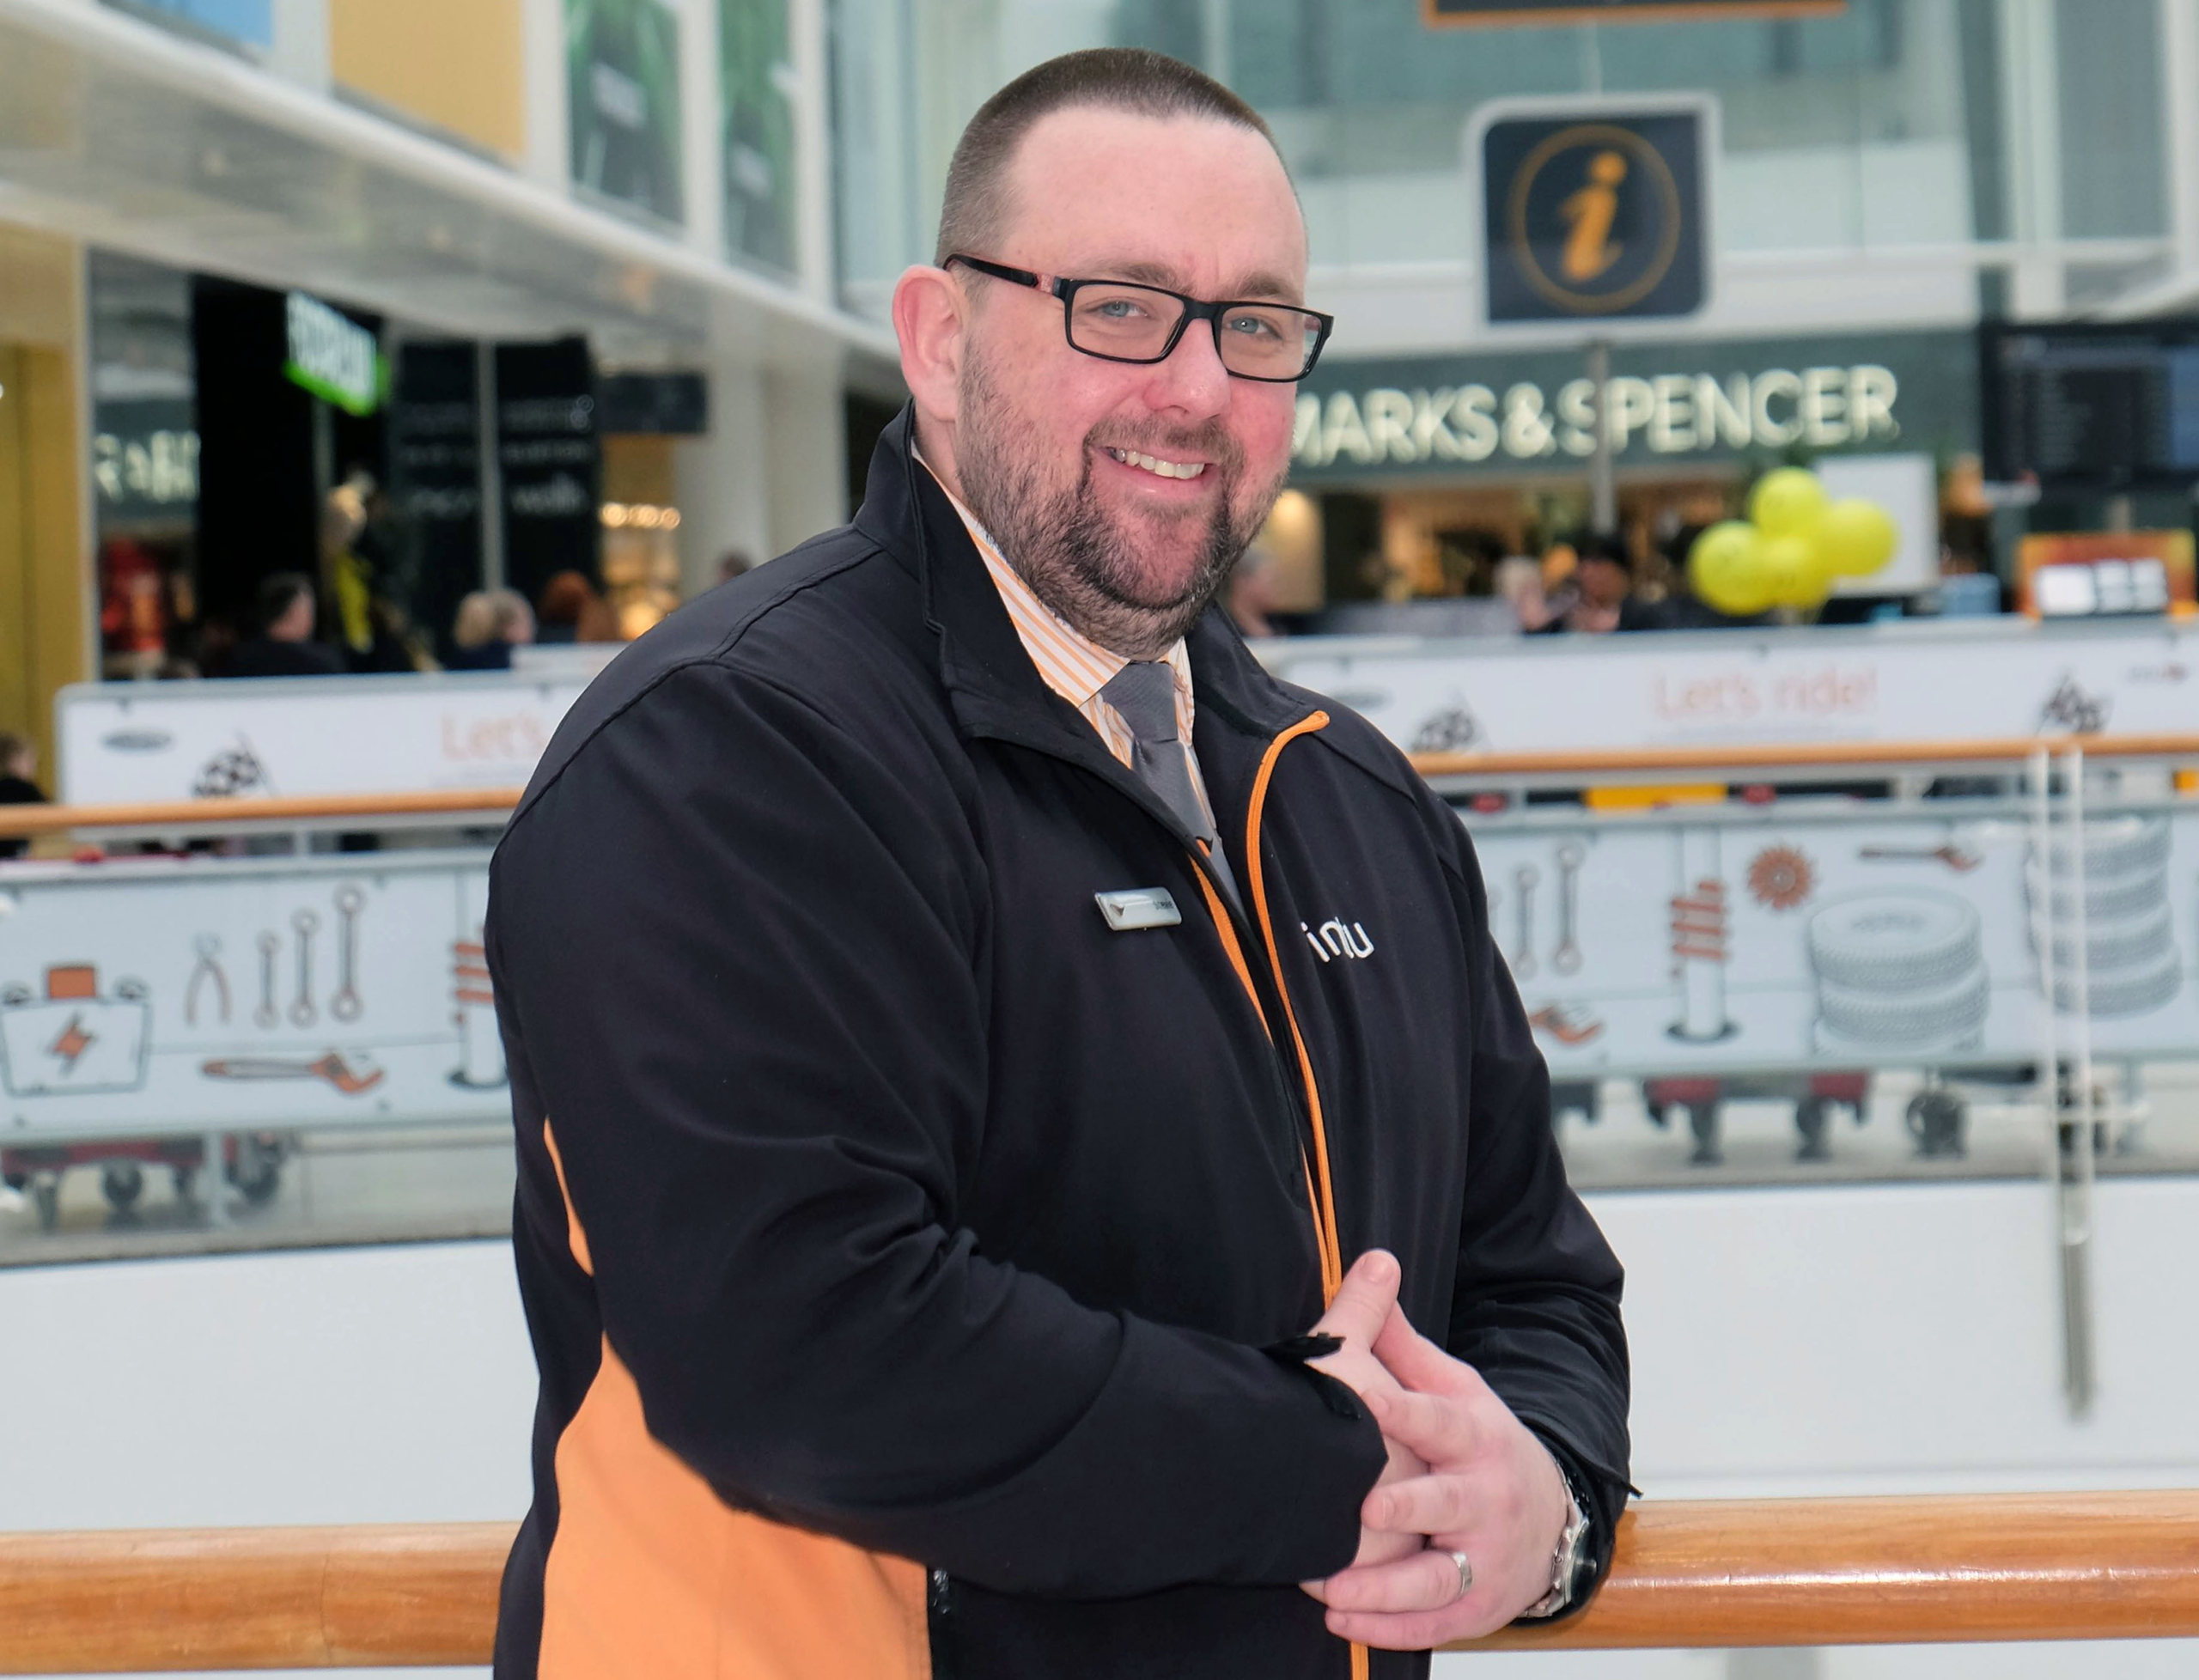 "A security staff manager at intu Braehead is in the running for a top national award. Stephen Stronach, 36, from Linwood, Renfrewshire is one of three students who have been shortlisted for the Chartered Management Institute Student of the Year Award. He has recently passed his Level 8 Award in Management and Leadership as a mature student after intu Braehead paid for a lecturer from West College Scotland to visit the centre to give lectures to a dozen security staff. Stephen, a security duty manager, who has worked at intu Braehead for 14 years explains: ""I've never had any further education qualifications before and it's been great learning the theory behind the things we do on a day-to-day basis. ""I really appreciate the opportunity the company has given me and I'm sure having this qualification will help me develop my career."" Peter Beagley, intu Braehead centre director said: ""Stephen has studied hard to get this management and leadership qualification and his dedication has been recognised by the fact he has been shortlisted for this CMI Student of the Year Award. It's a fantastic achievement."" The Chartered Management Institute is the UK's only chartered professional body dedicated to promoting the highest standards in management and leadership excellence. The outright winner of the Student of the Year Award is due to be announced next week."